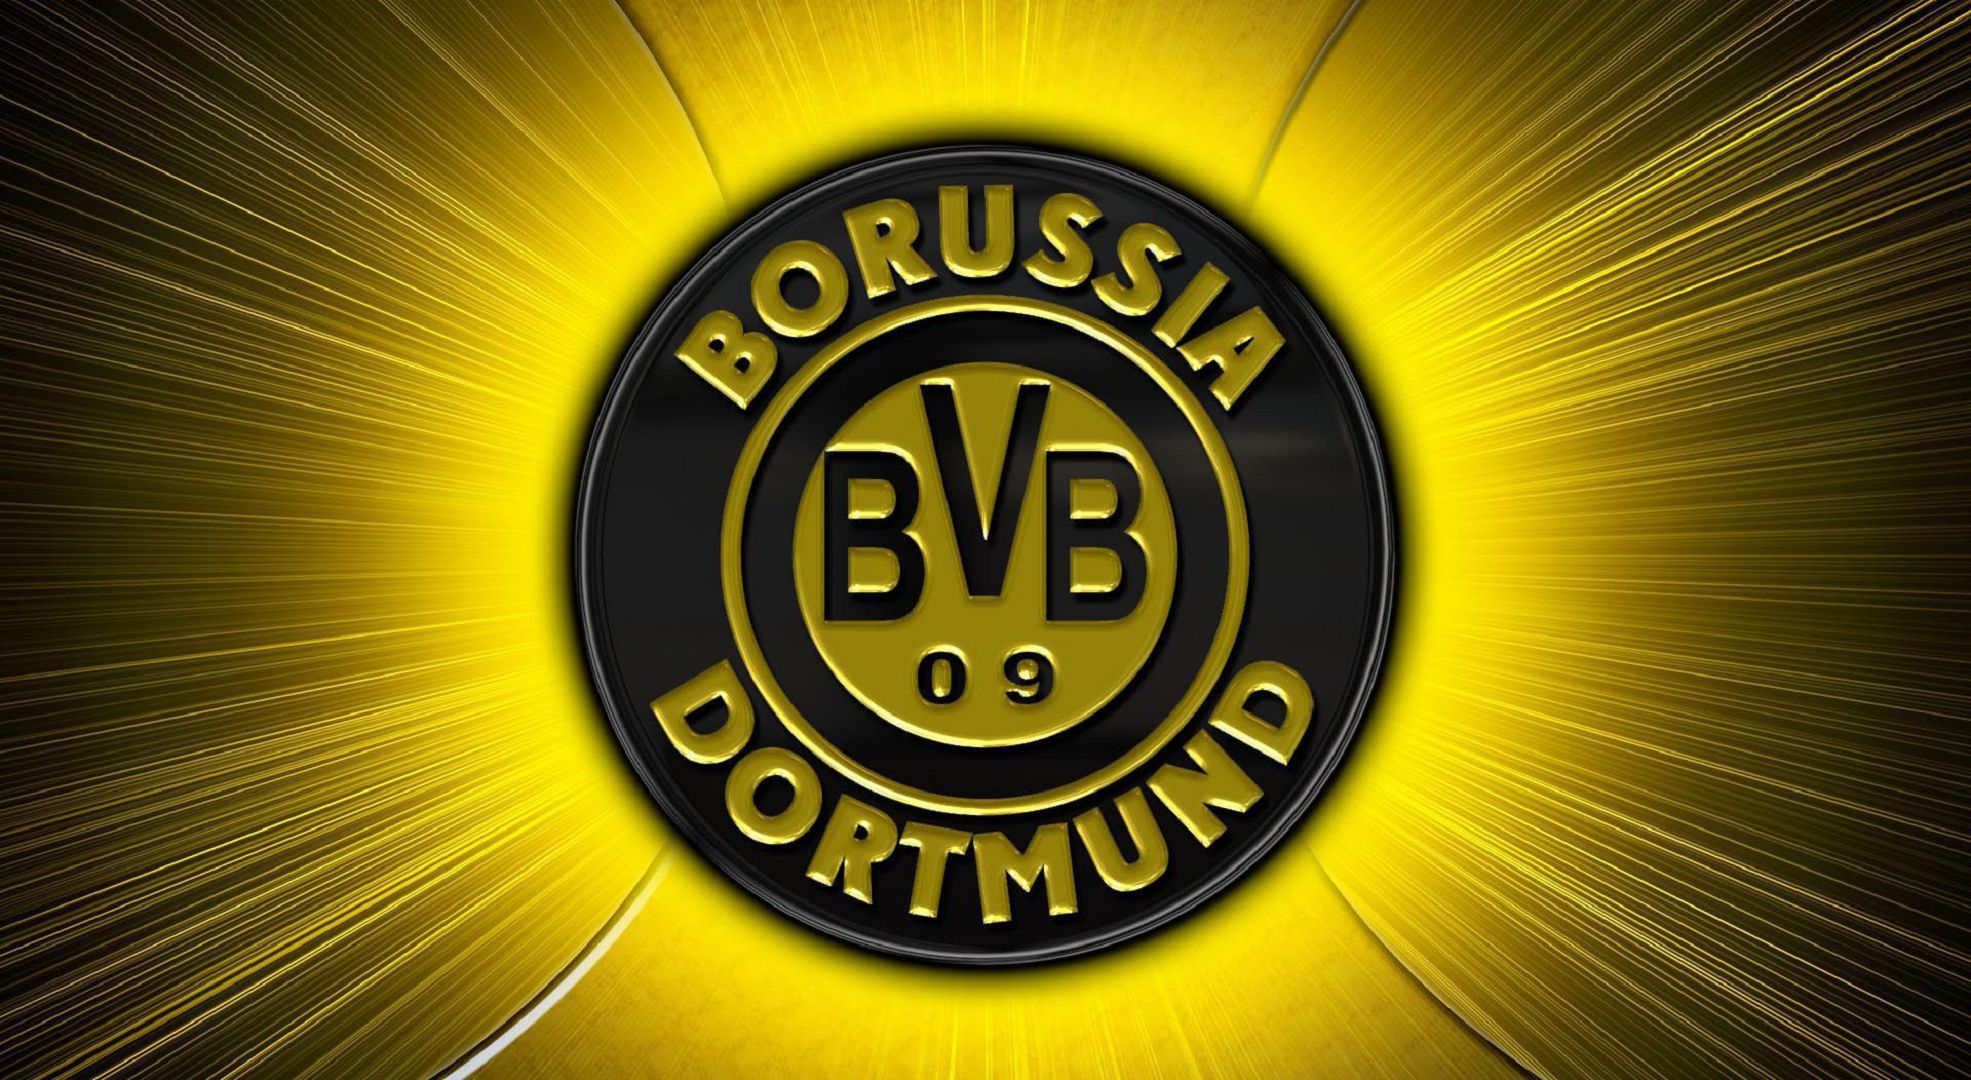 Borussia Dortmund Photos